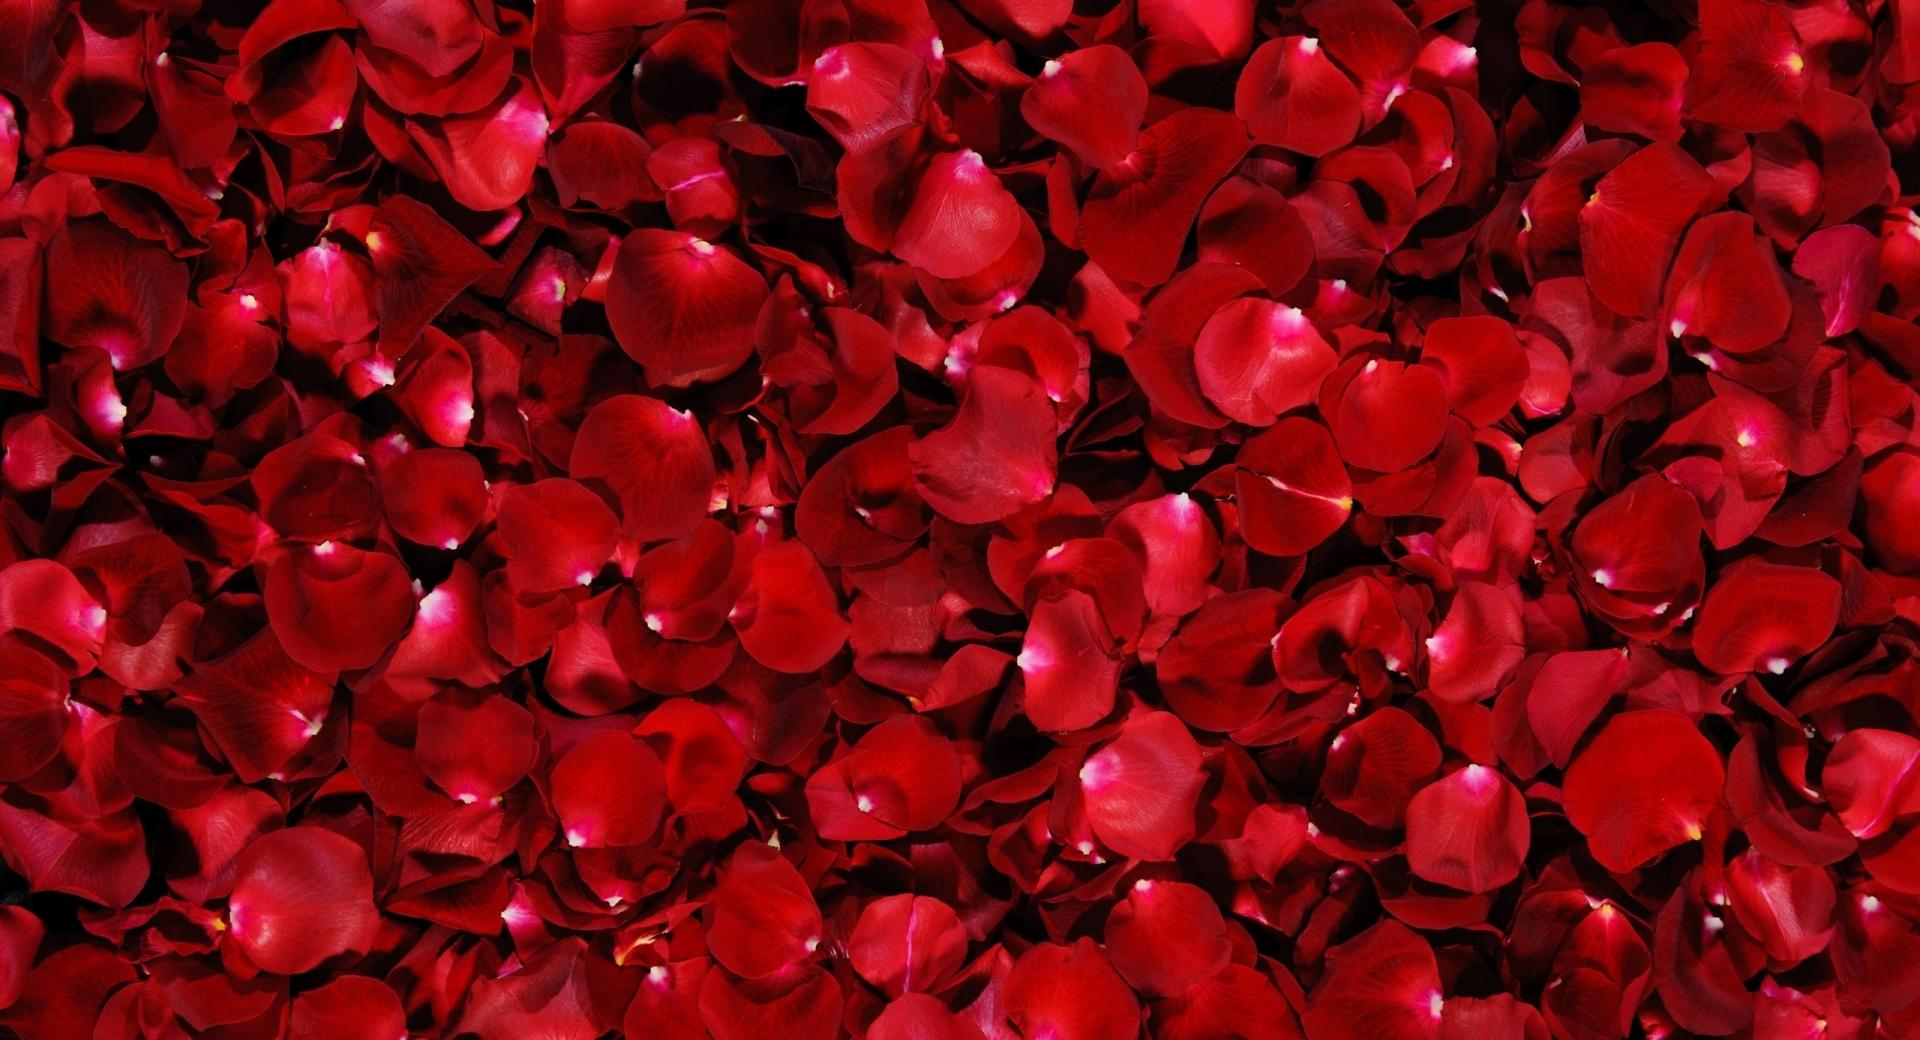 Red Rose Petals wallpapers HD quality